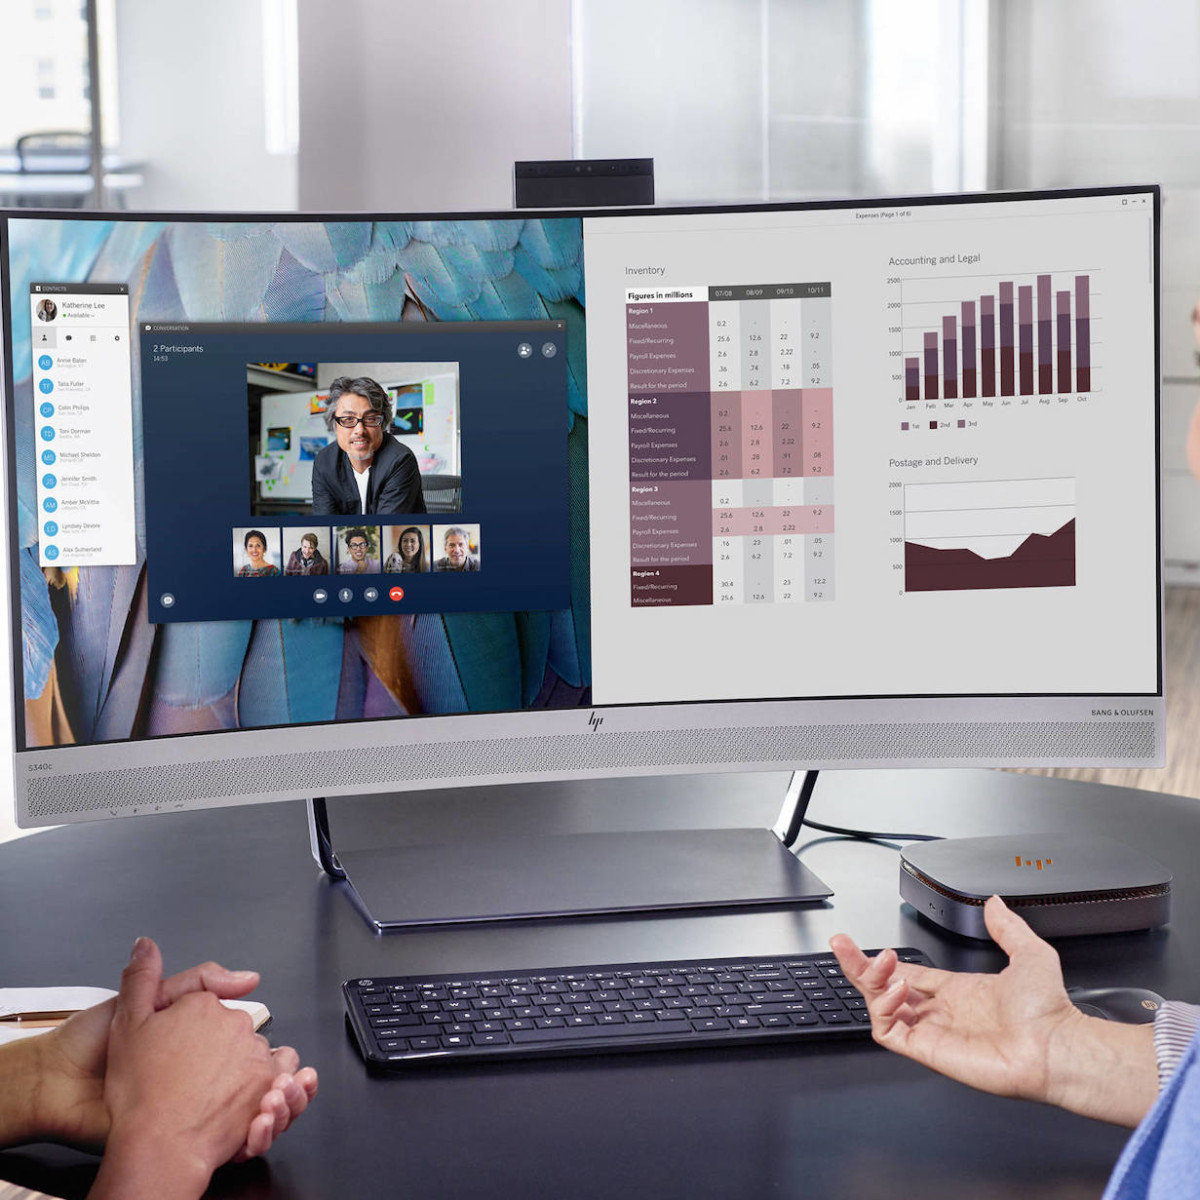 HP EliteDisplay S340c Curved Monitor offers true face-to-face collaboration